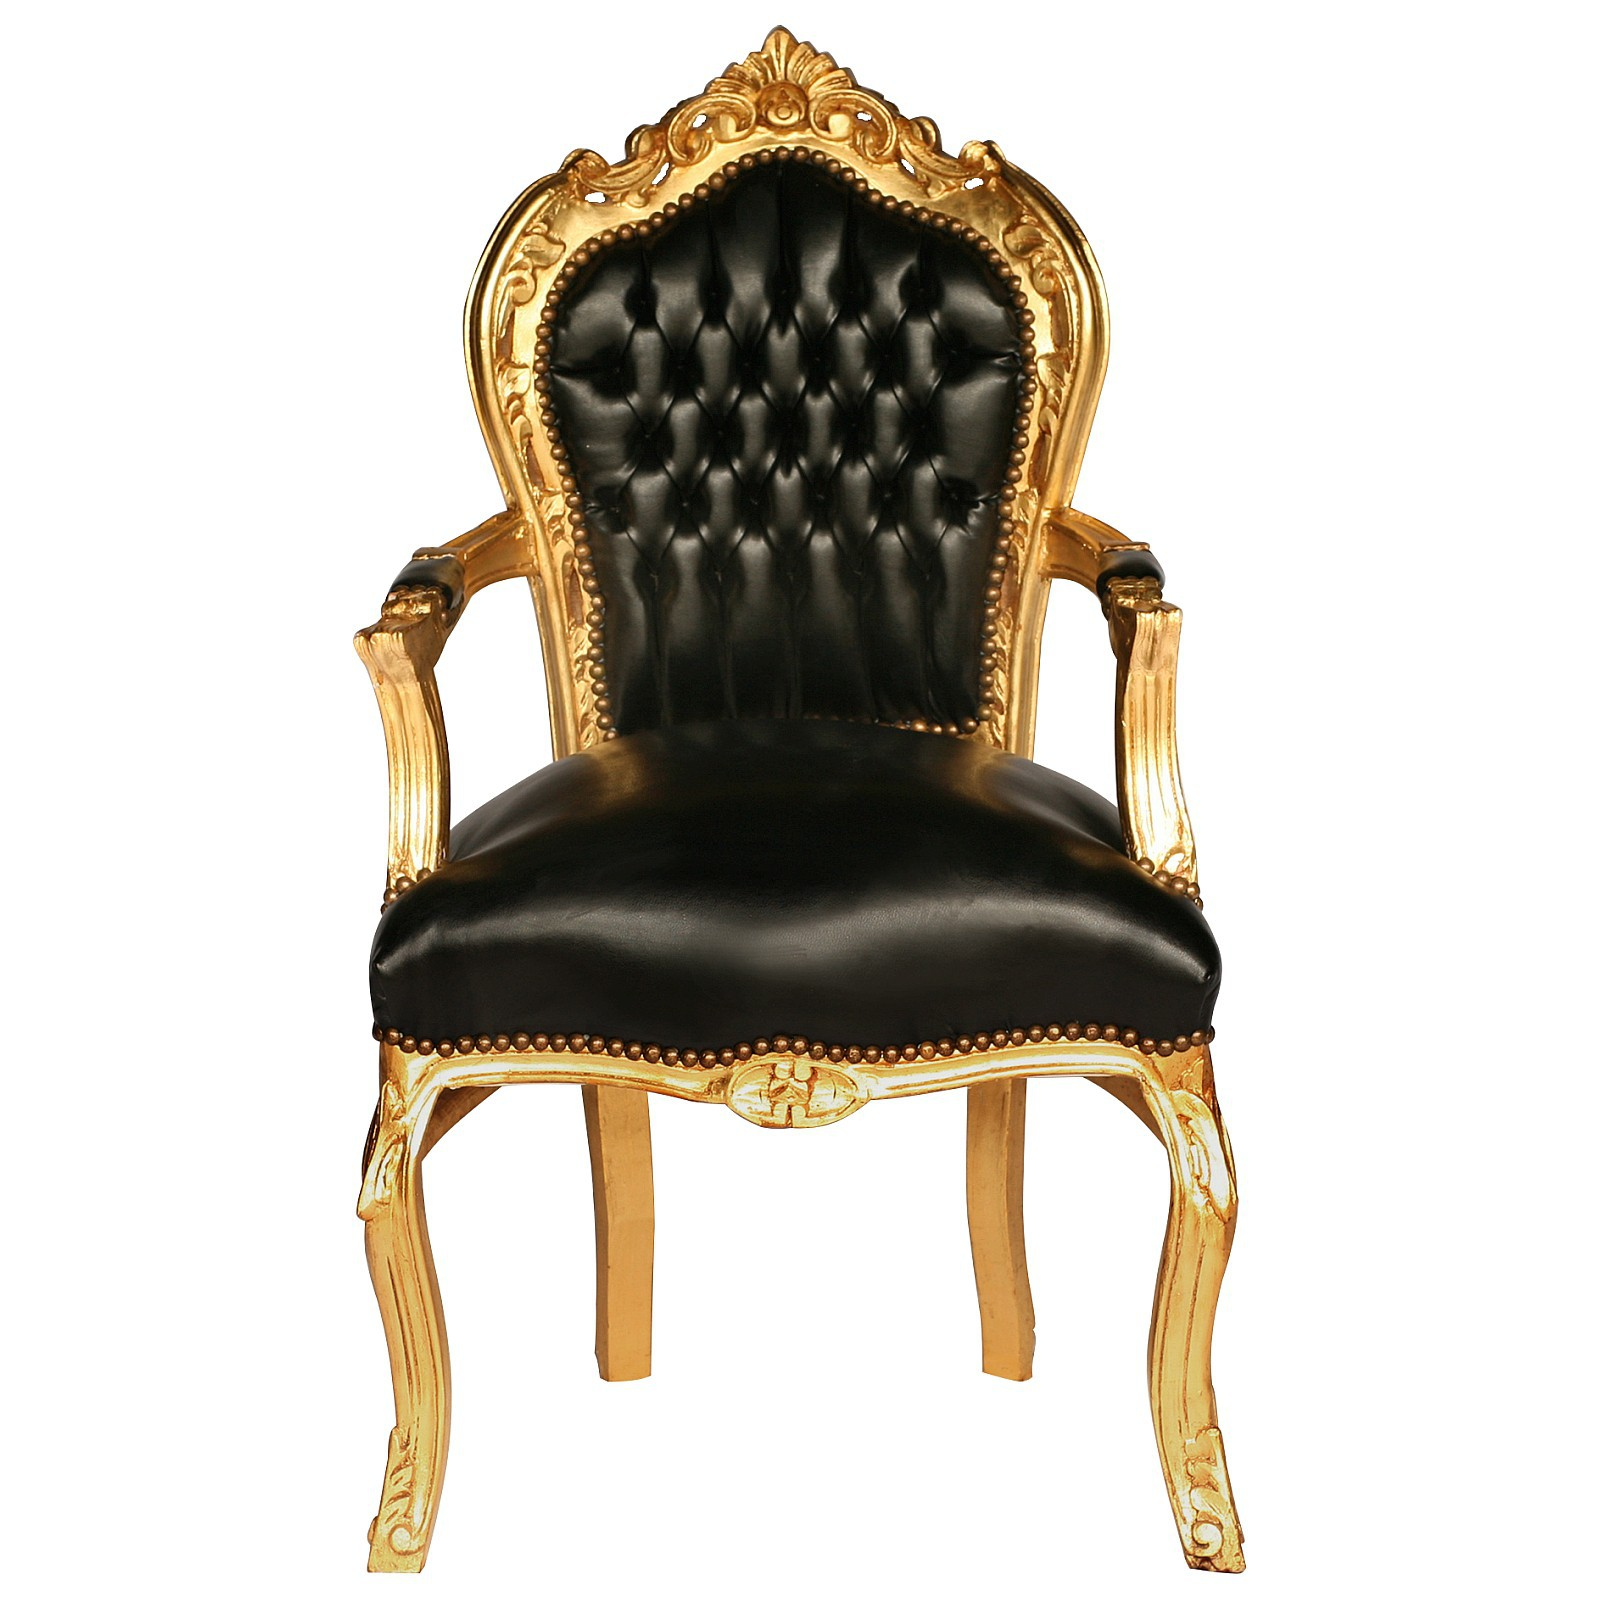 Superbe Black Carver Accent Dining Chair In Antique Baroque Furniture Style U2013 Bild 1